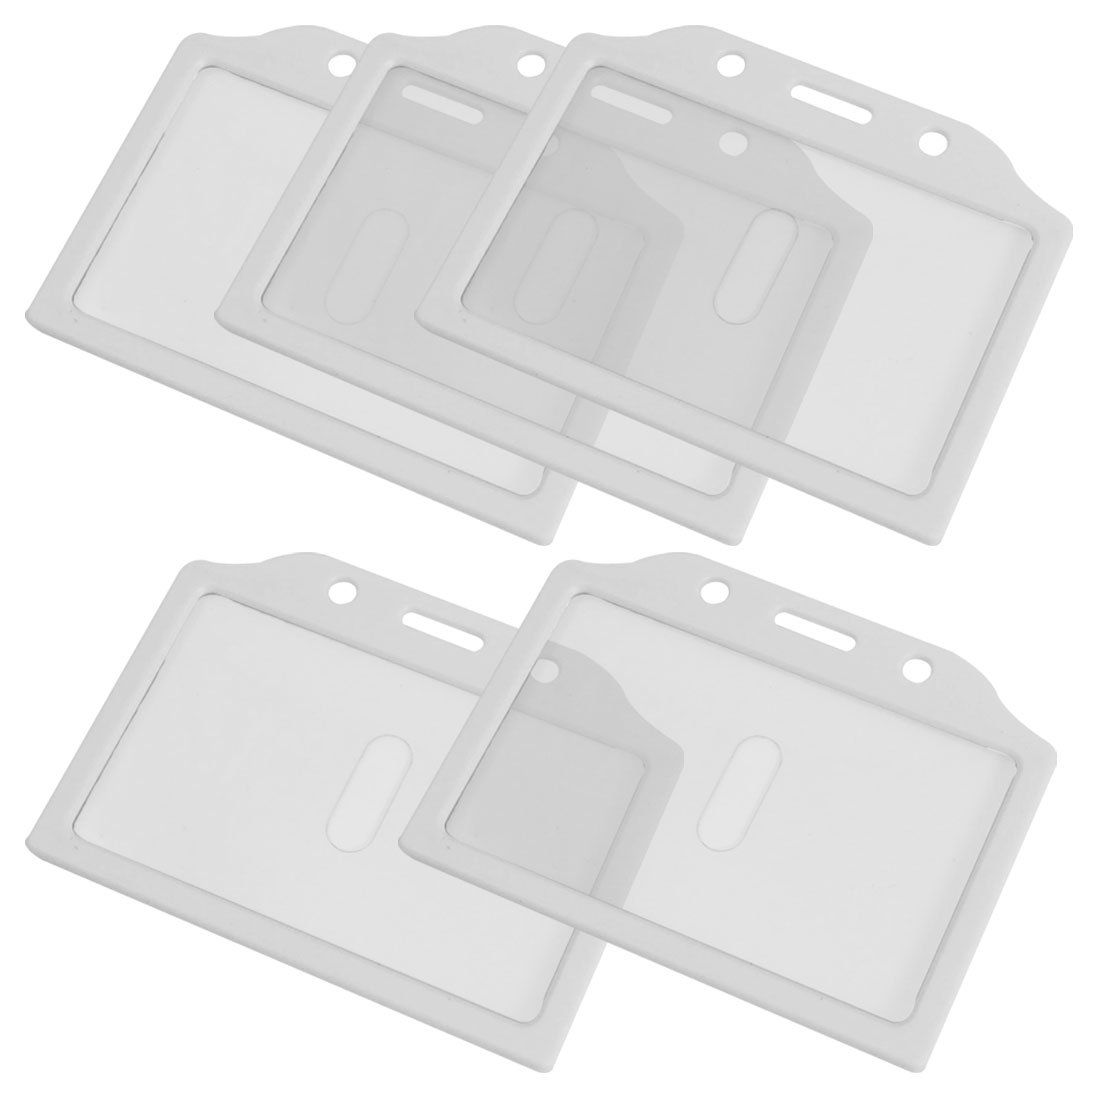 5PCS White Clear Plastic Business Badge Credit Card Holder Case for ...